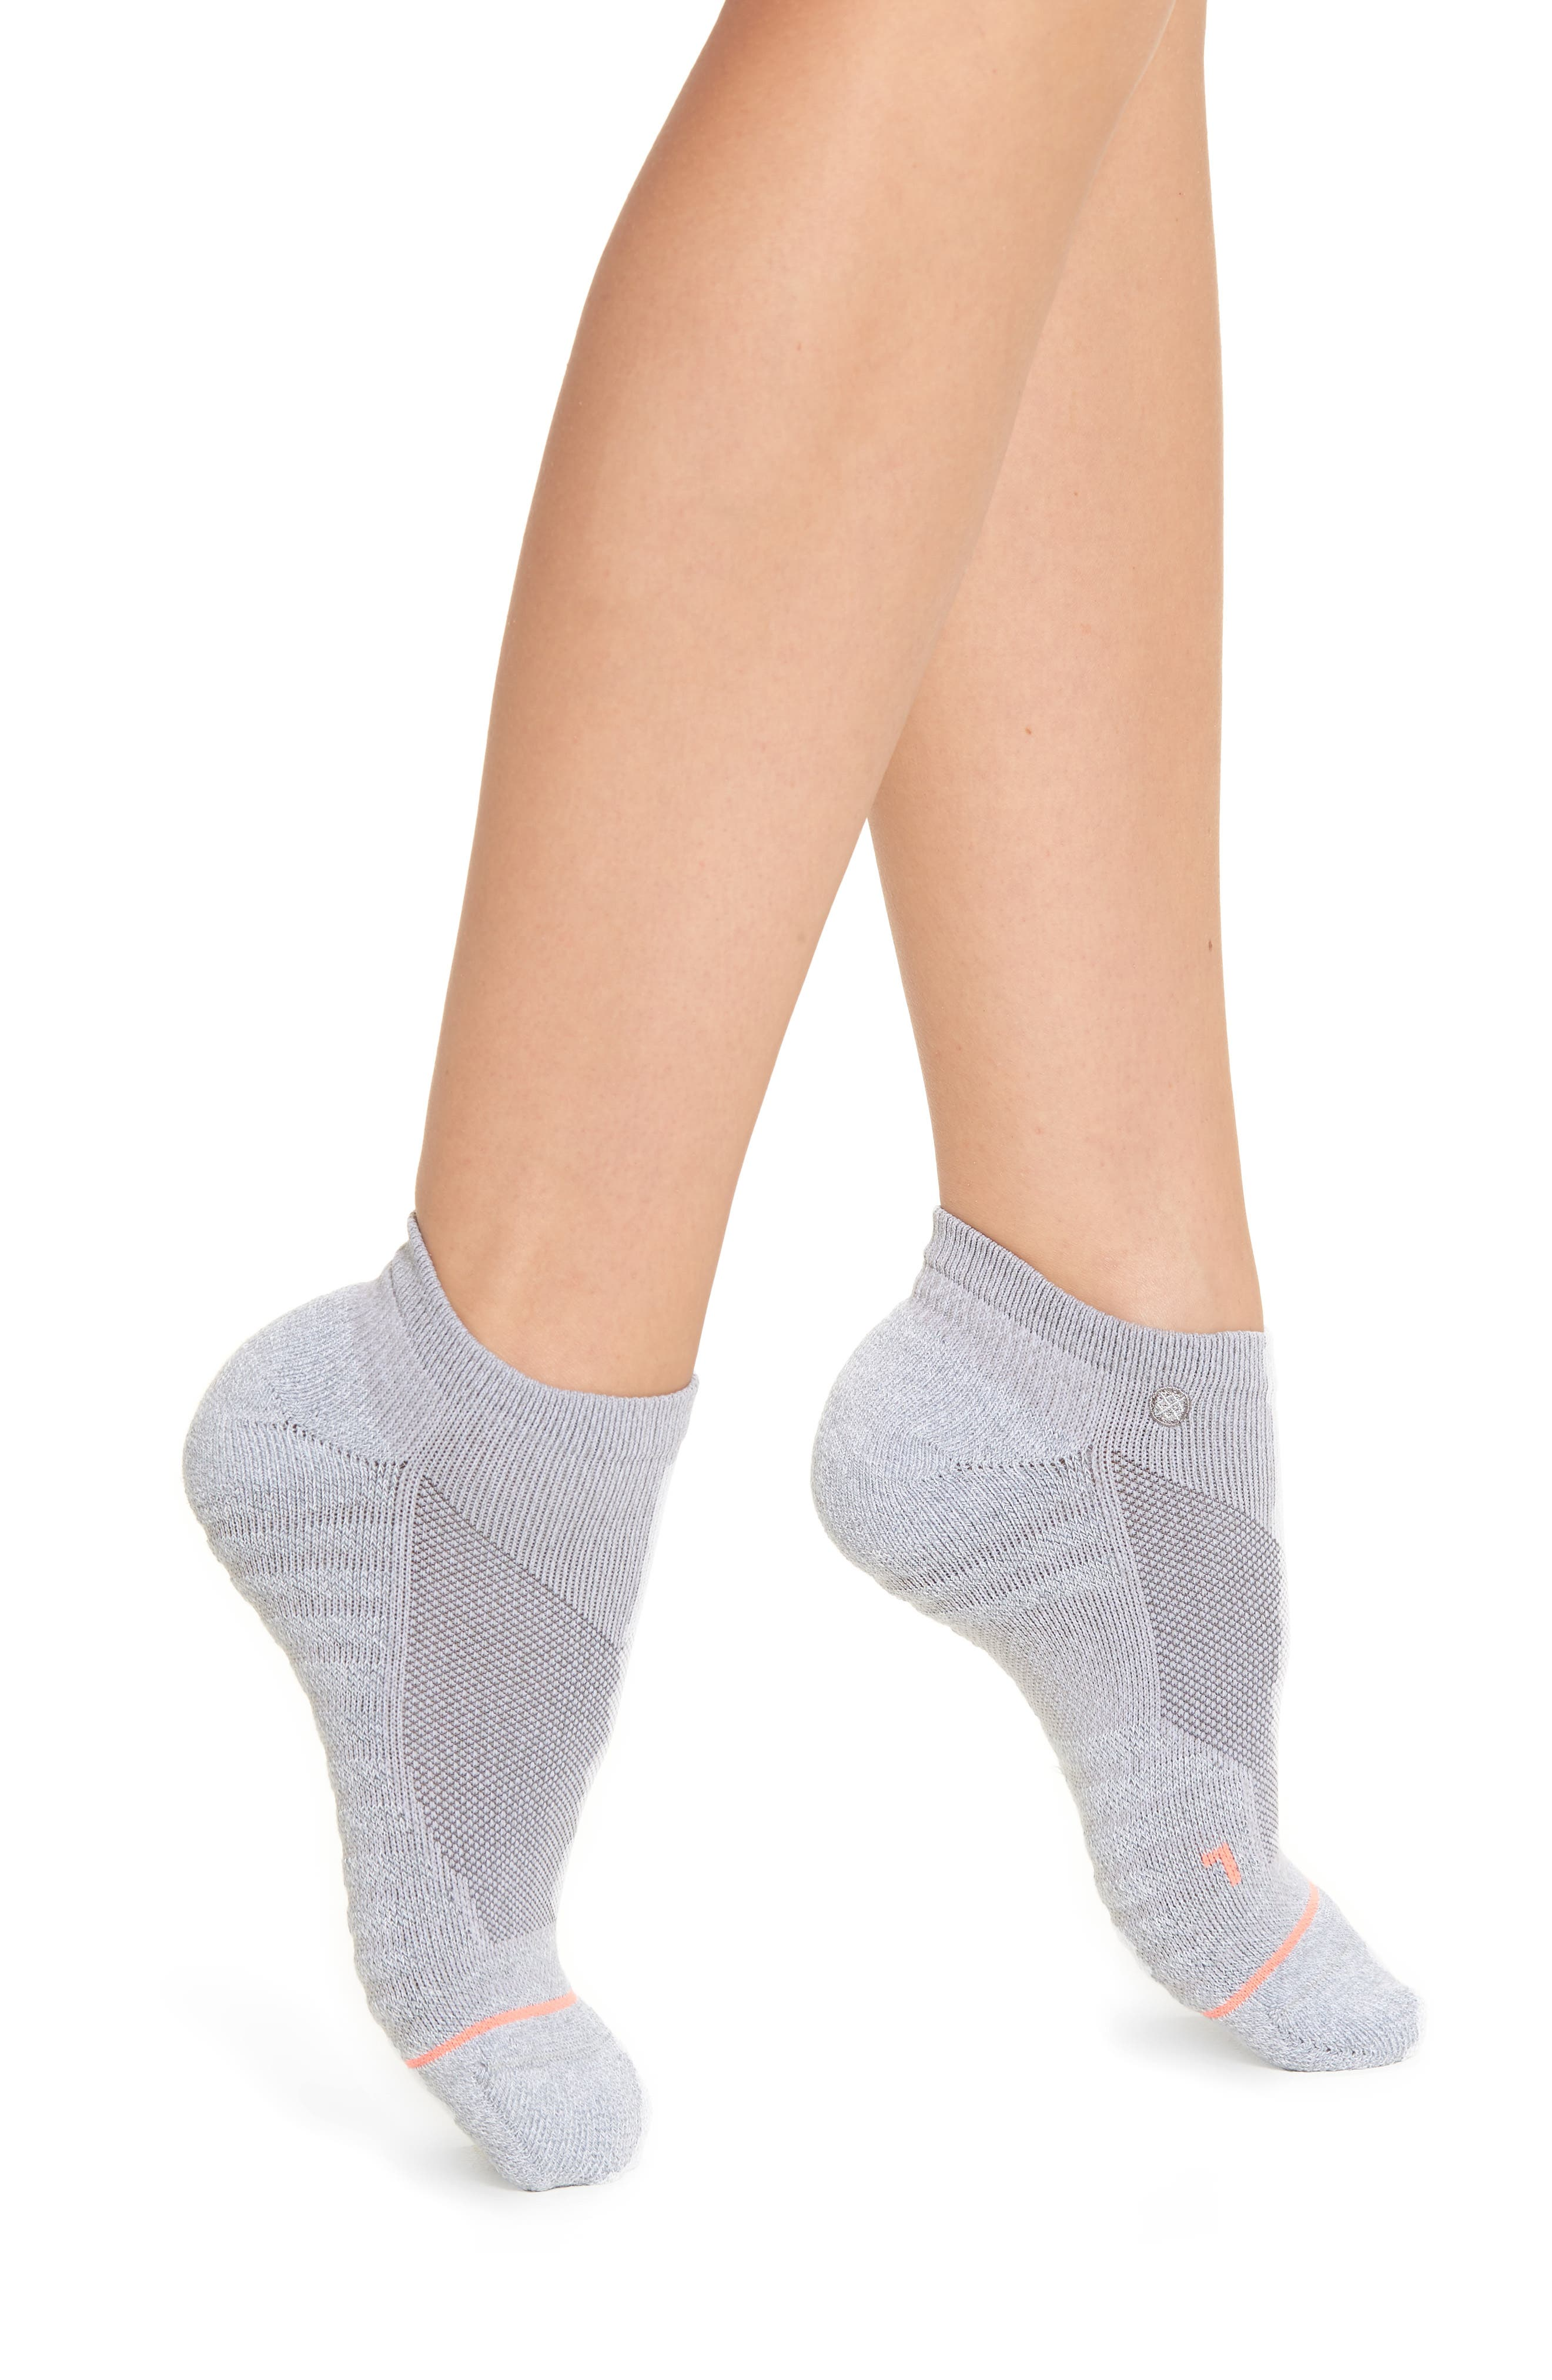 Icon Athletic Low Cut Socks,                         Main,                         color, Grey